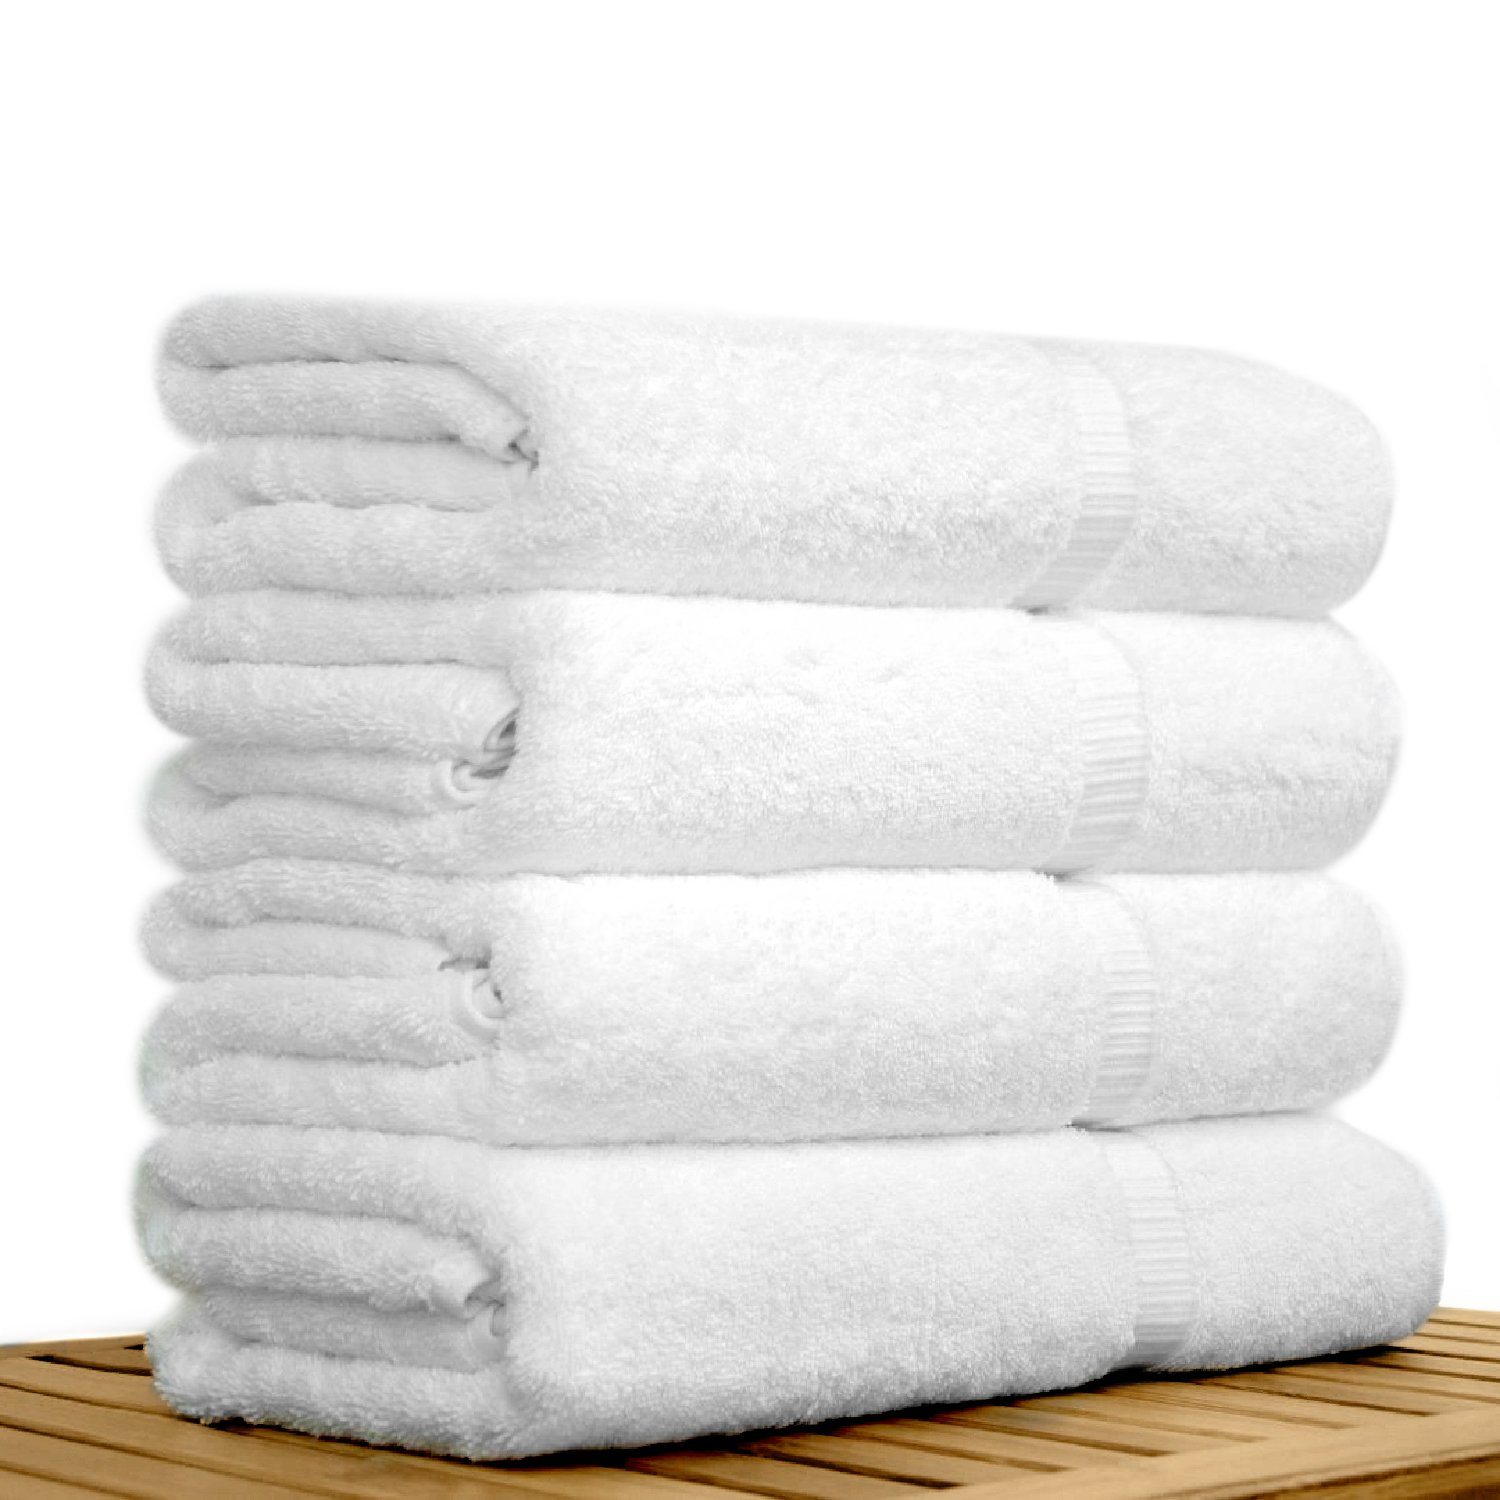 "27"" x 54"" - 17 lbs/doz - %100 Turkish Cotton Bamboo Blended Ultra Soft White Bath Towel-Robemart.com"